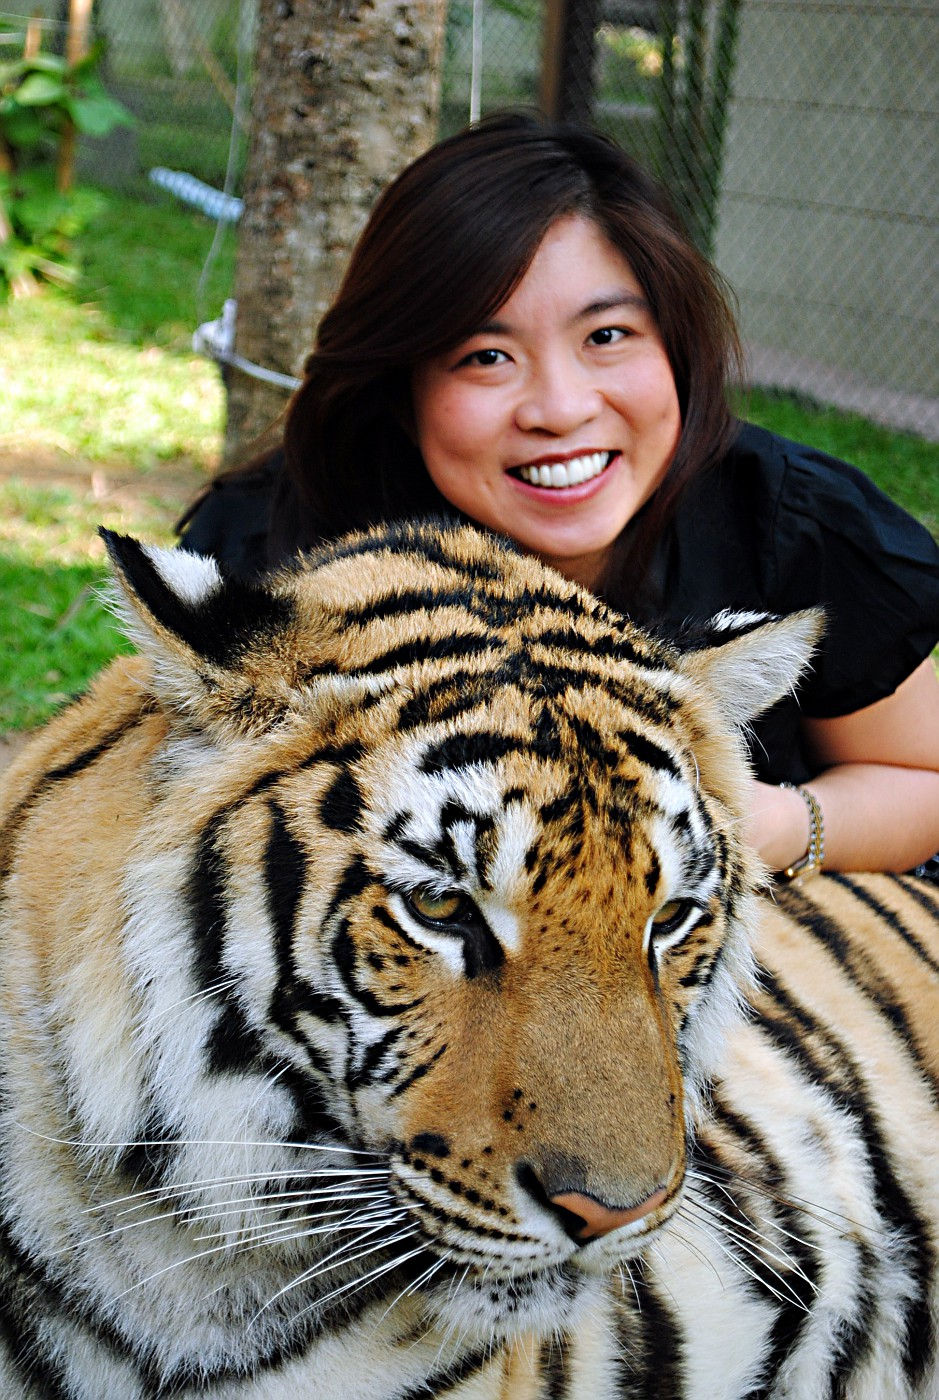 026) Cindy with adult tiger